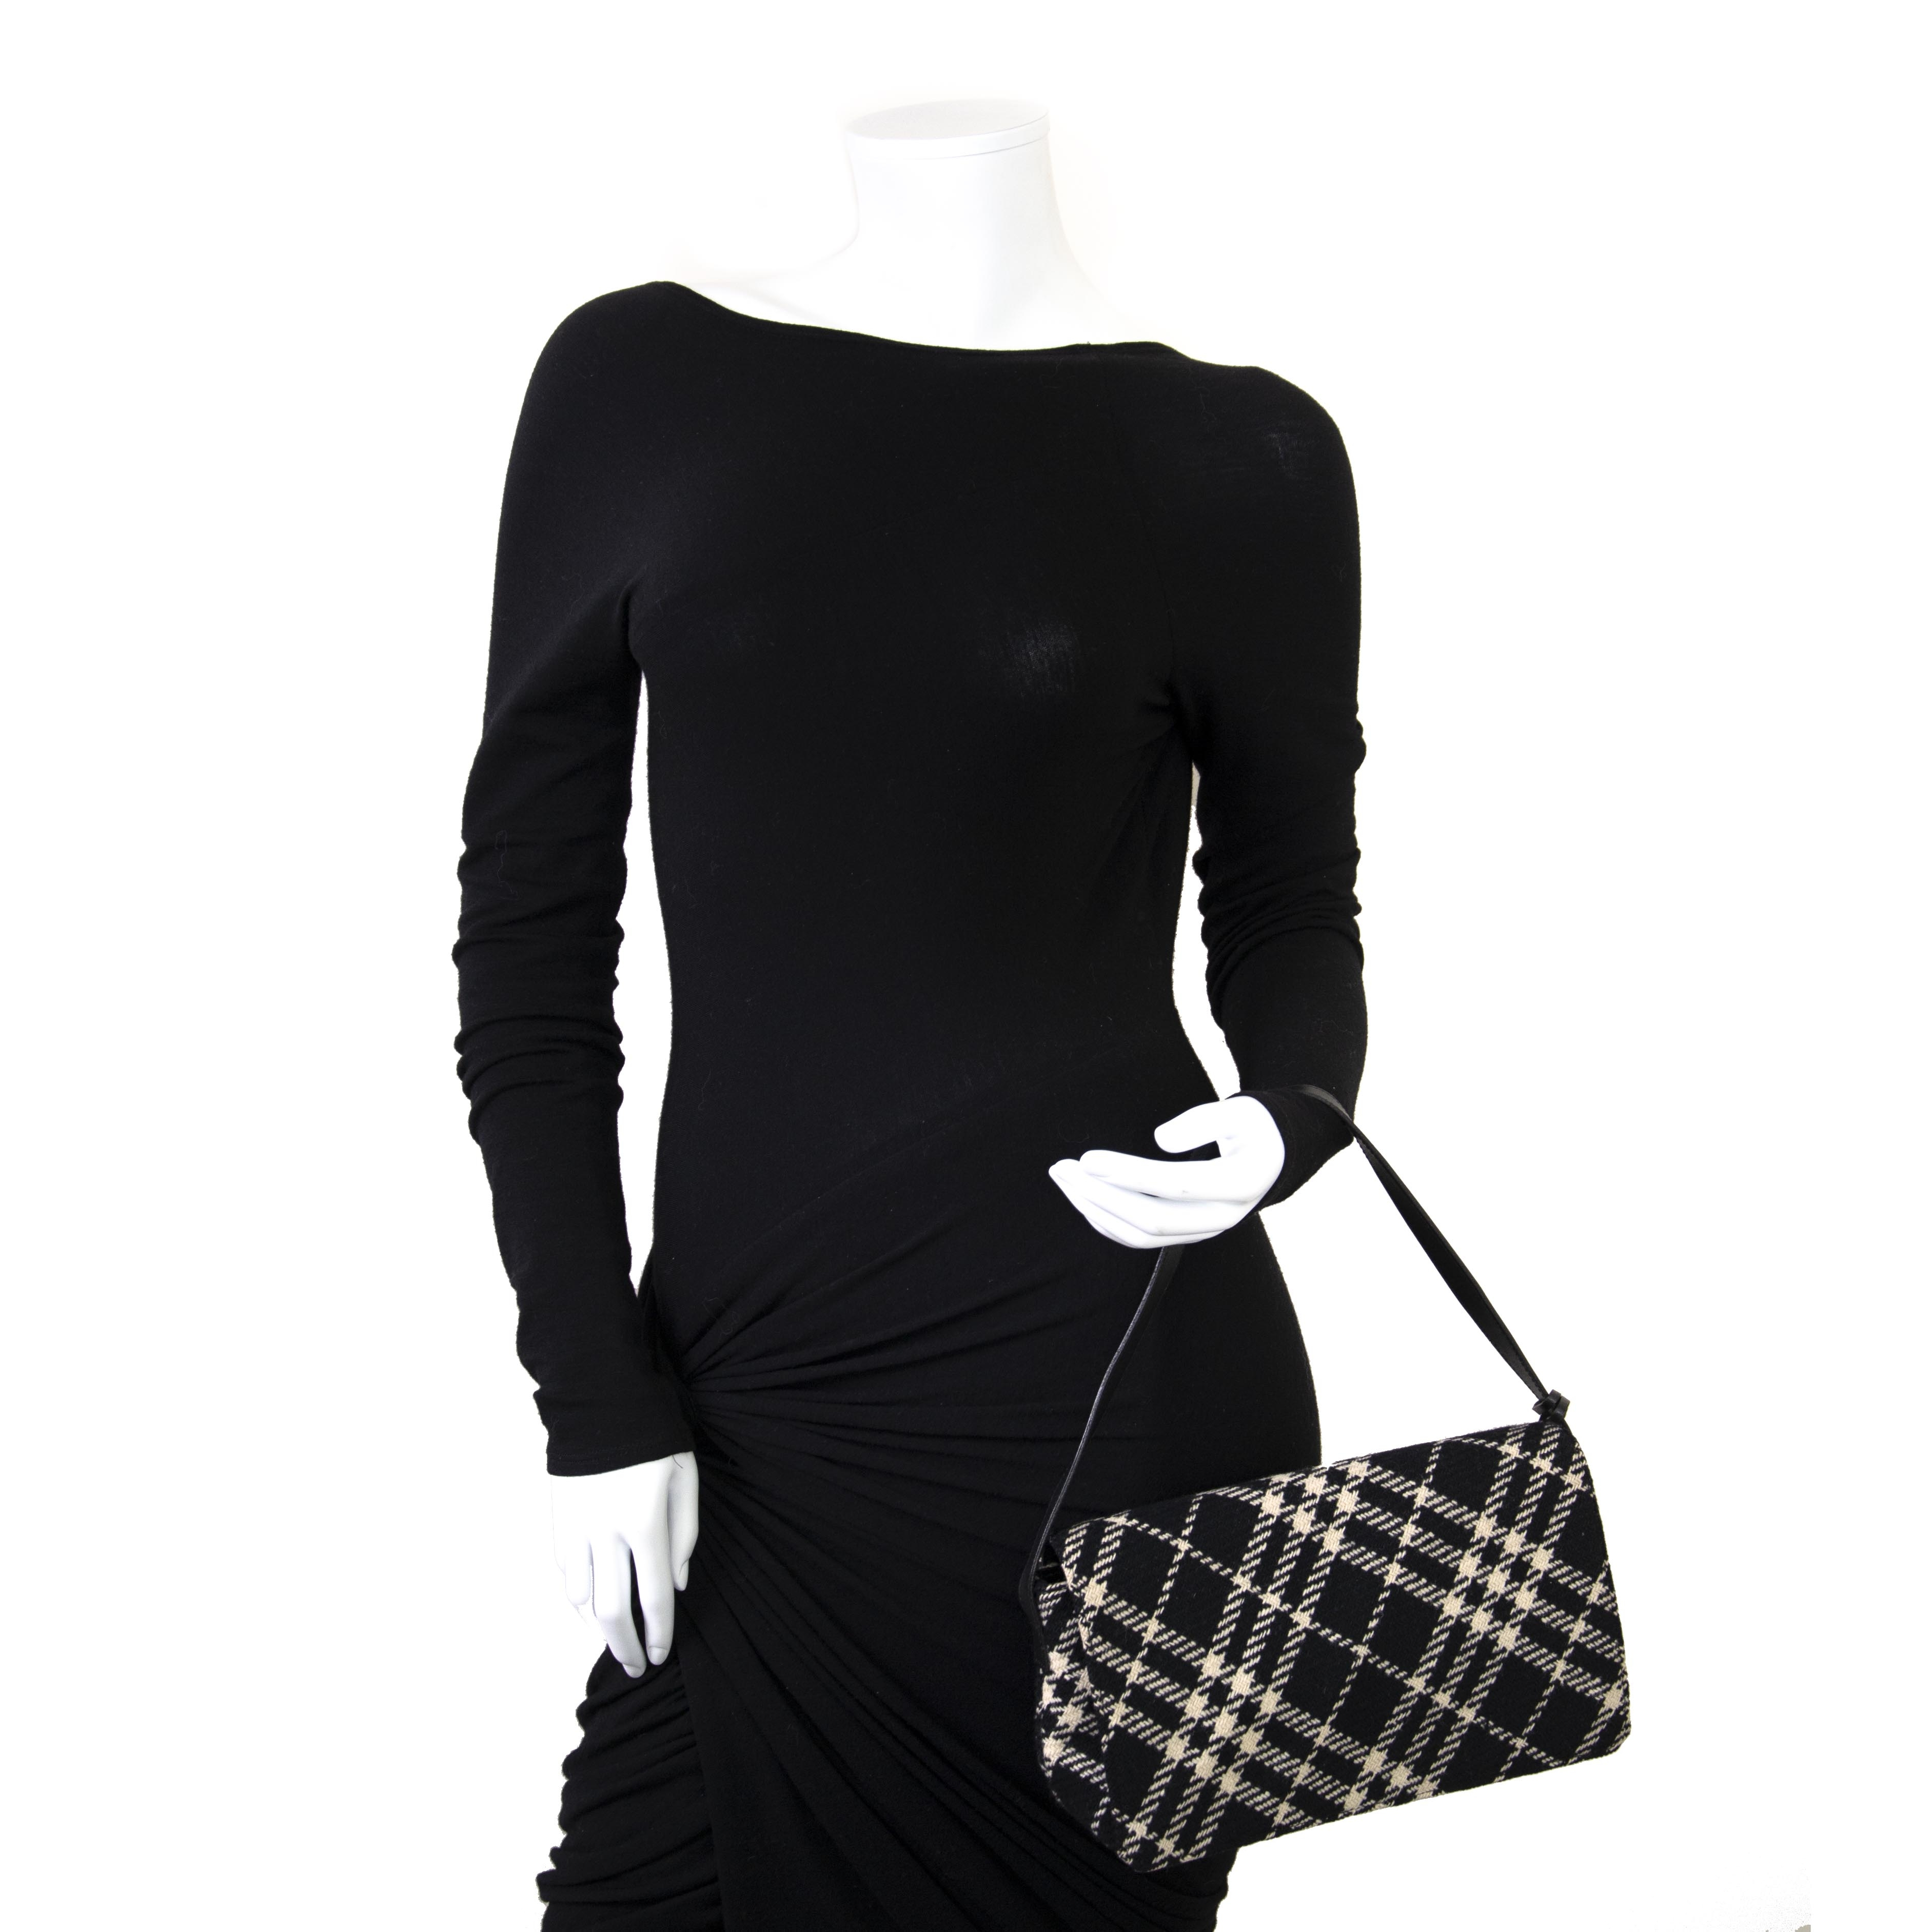 We buy and sell your authentic Burberry Black White Checked Wool Bag